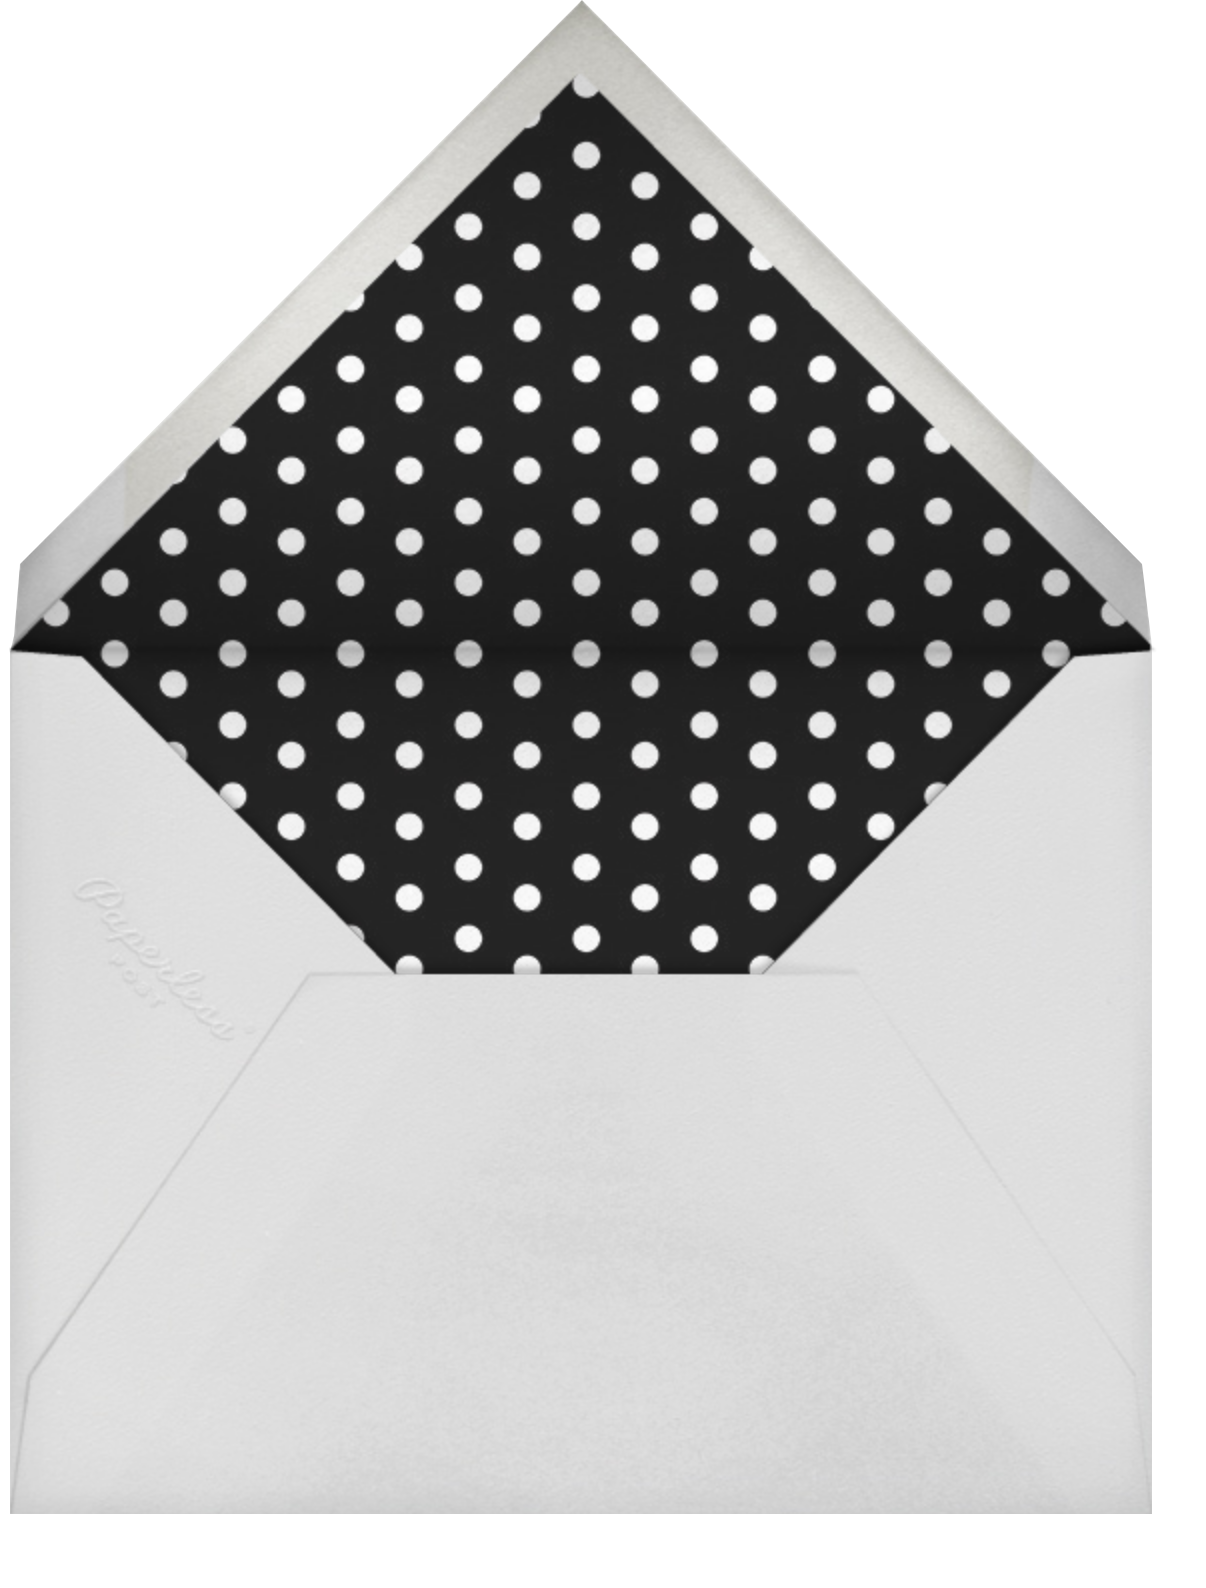 Queen for a Day - Light - Rifle Paper Co. - Envelope